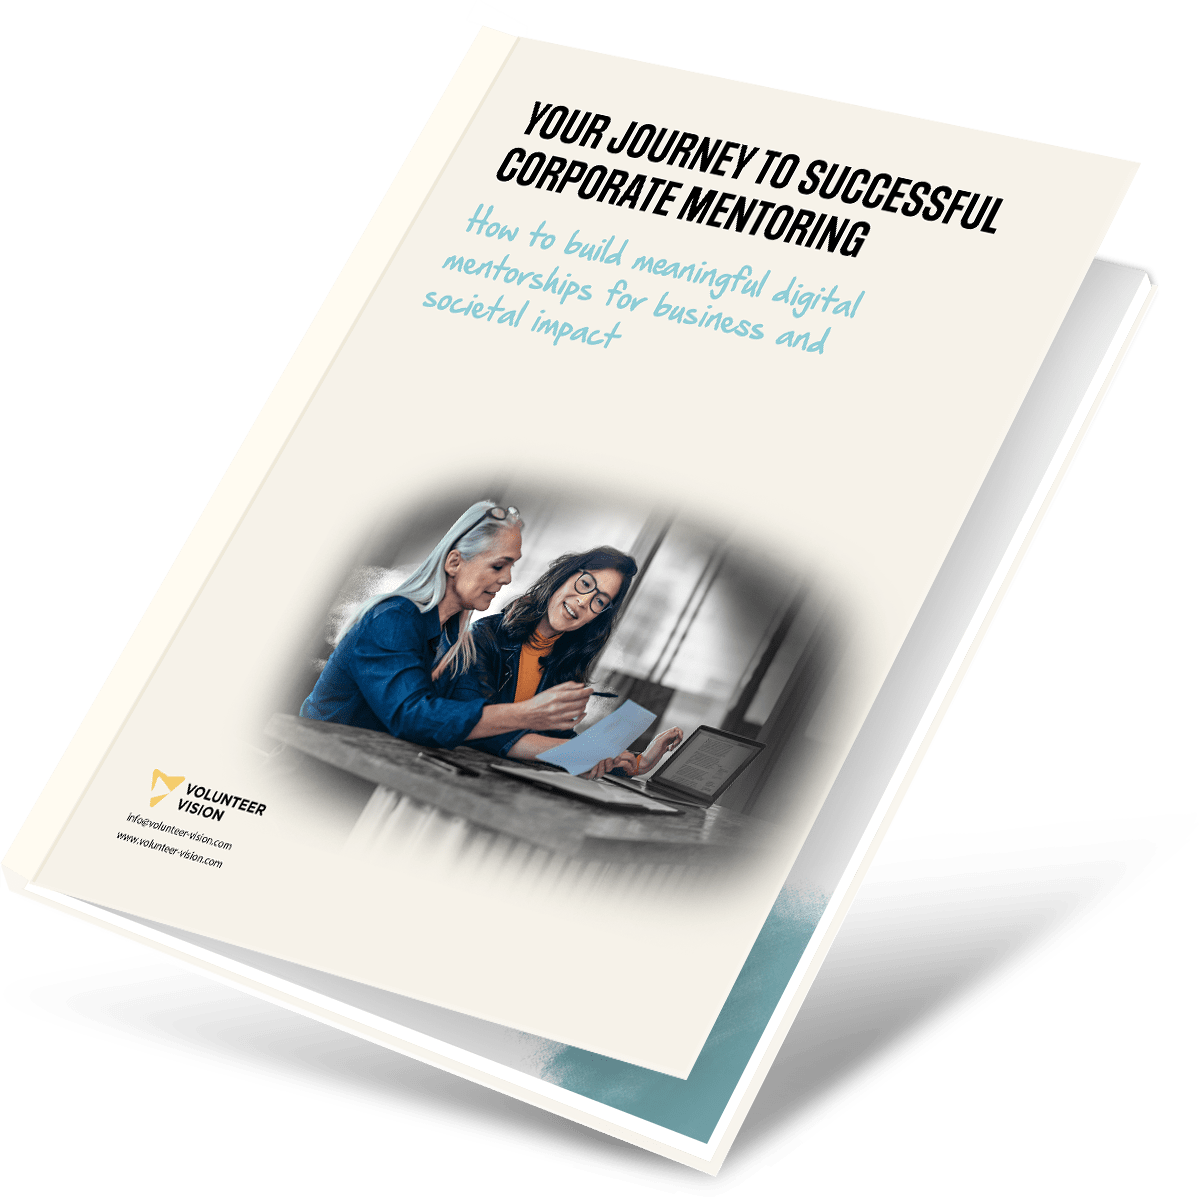 YOUR JOURNEY TO SUCCESSFUL CORPORATE MENTORING